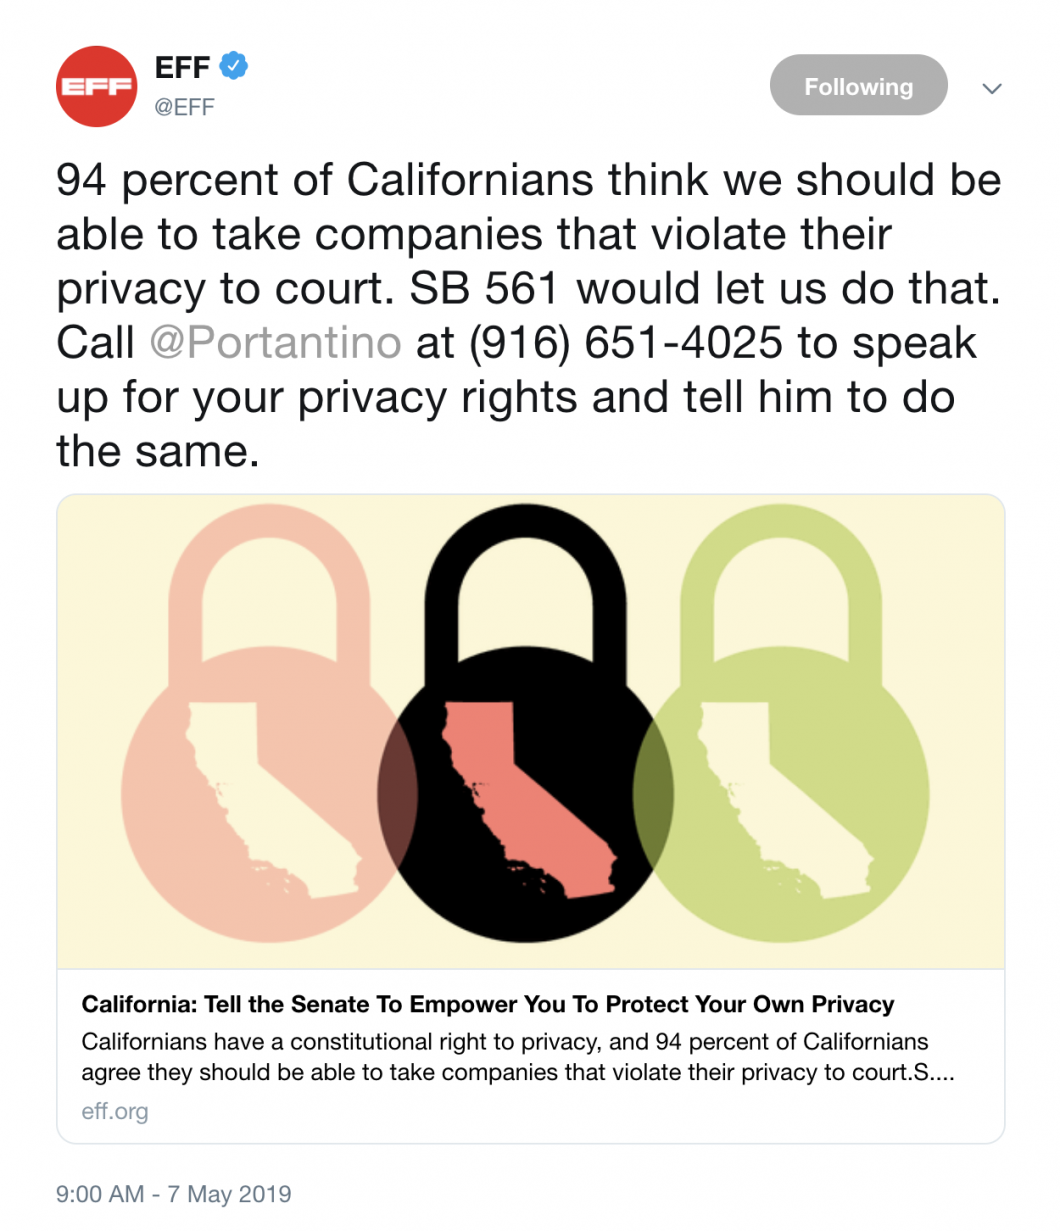 Screenshot of EFF's California: Tell the Senate to Empower You to Protect Your Own Privacy tweet.  States:94 percent of Californians think we should be able to take companies that violate their privacy to court. SB 561 would let us do that. Call @Portantino at (916) 651-4025 to speak up for your privacy rights and tell him to do the same.